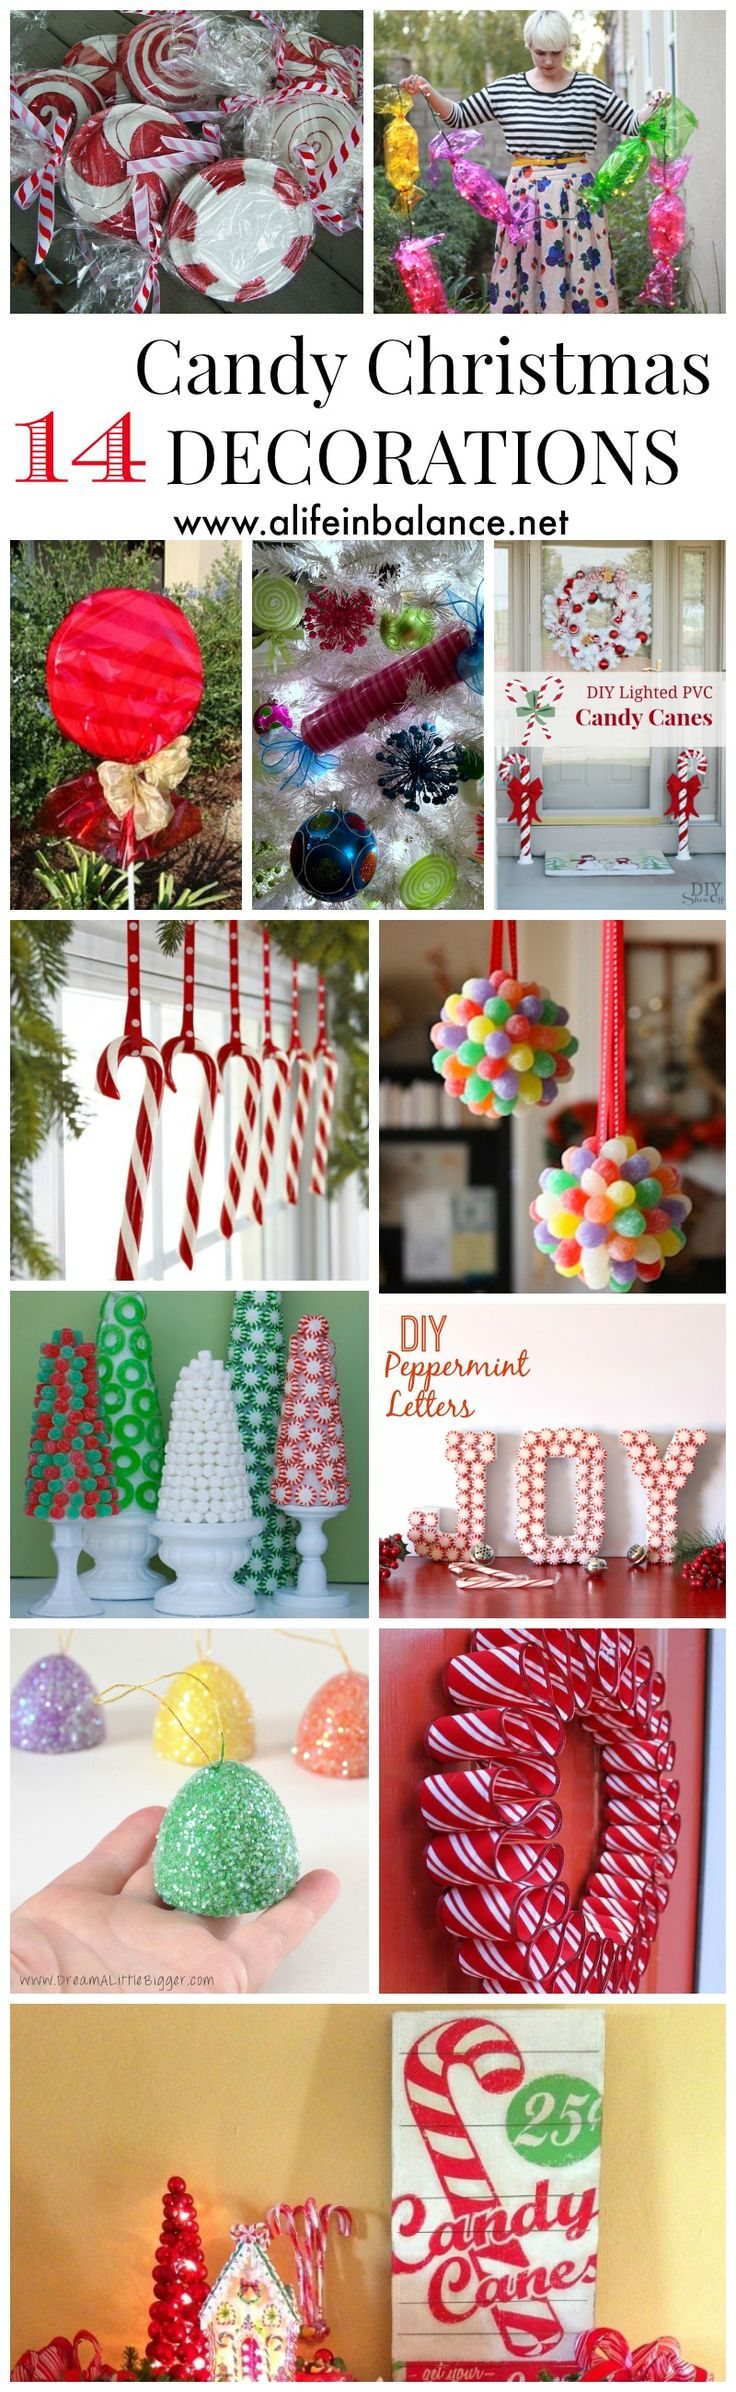 how to make candy cane decorations for outside